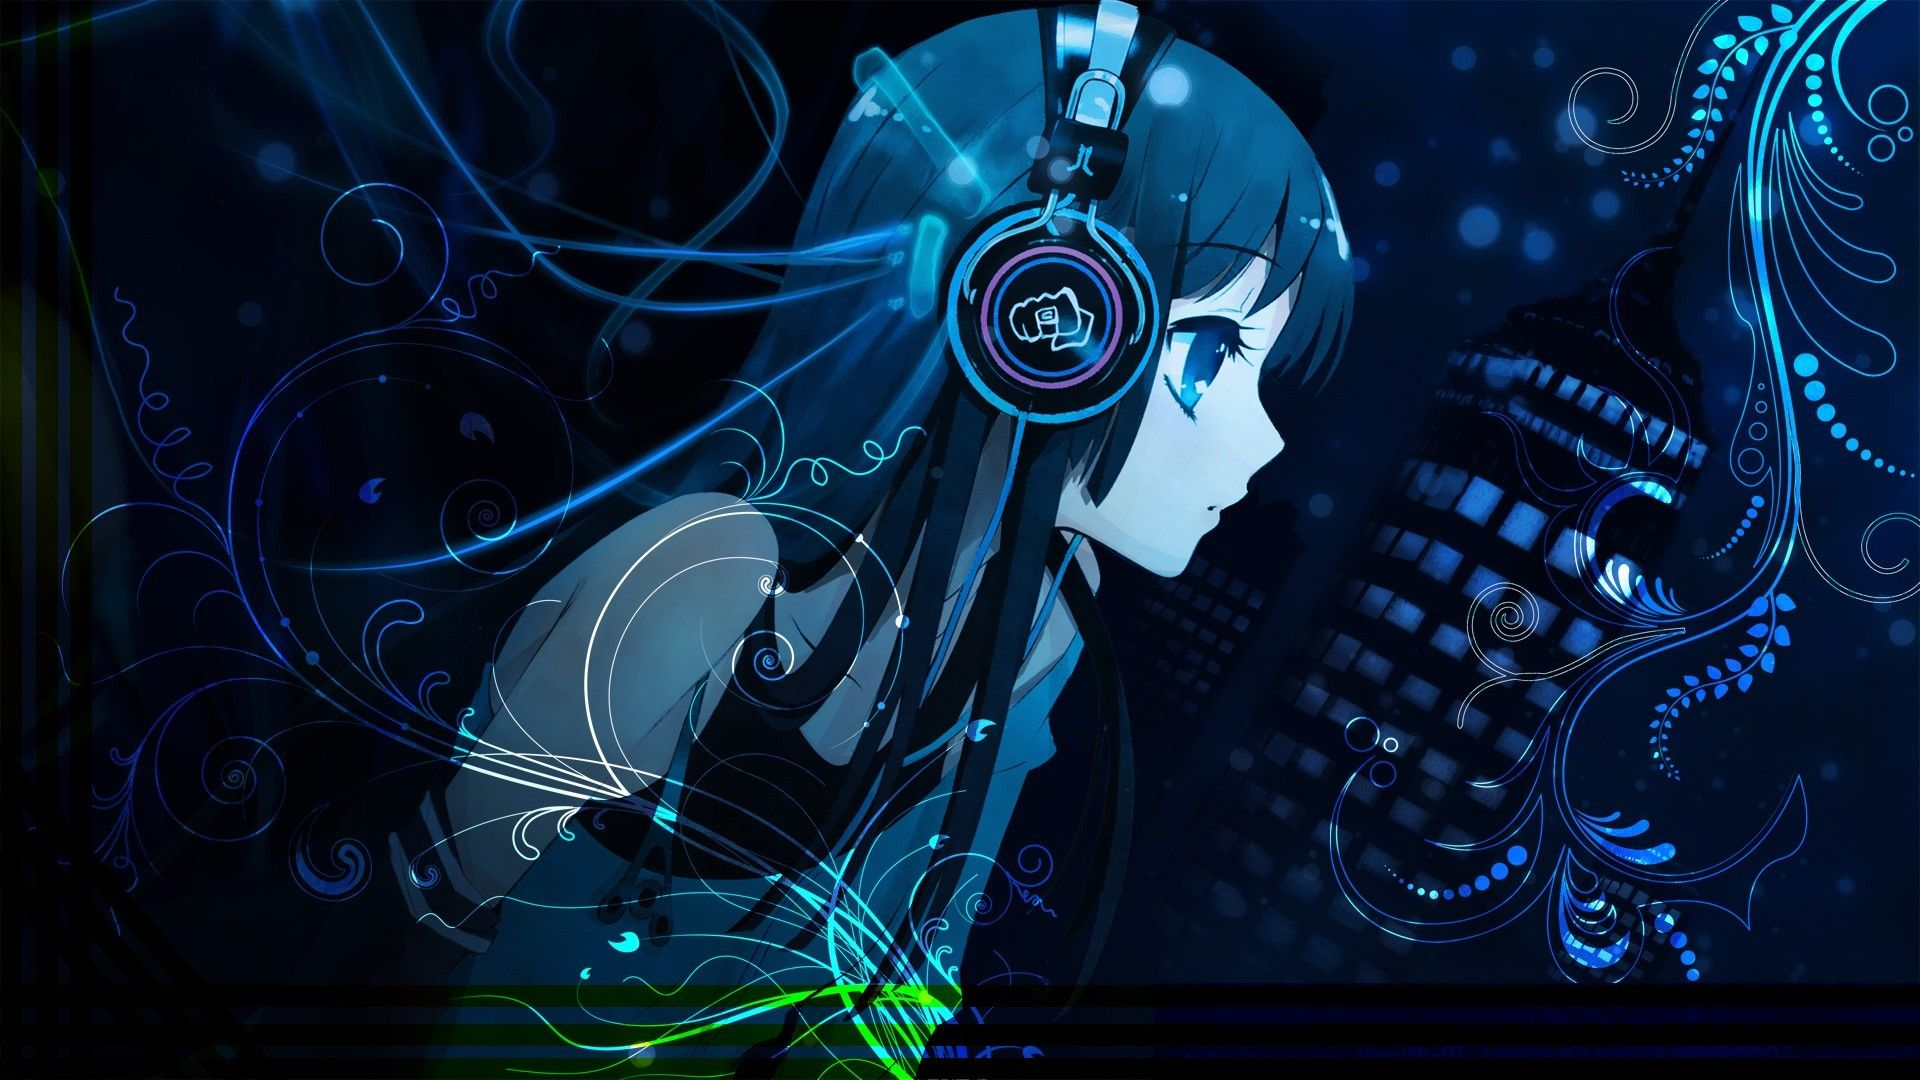 Anime Music Girl Wallpaper In High Quality Wide HD Wallpapers